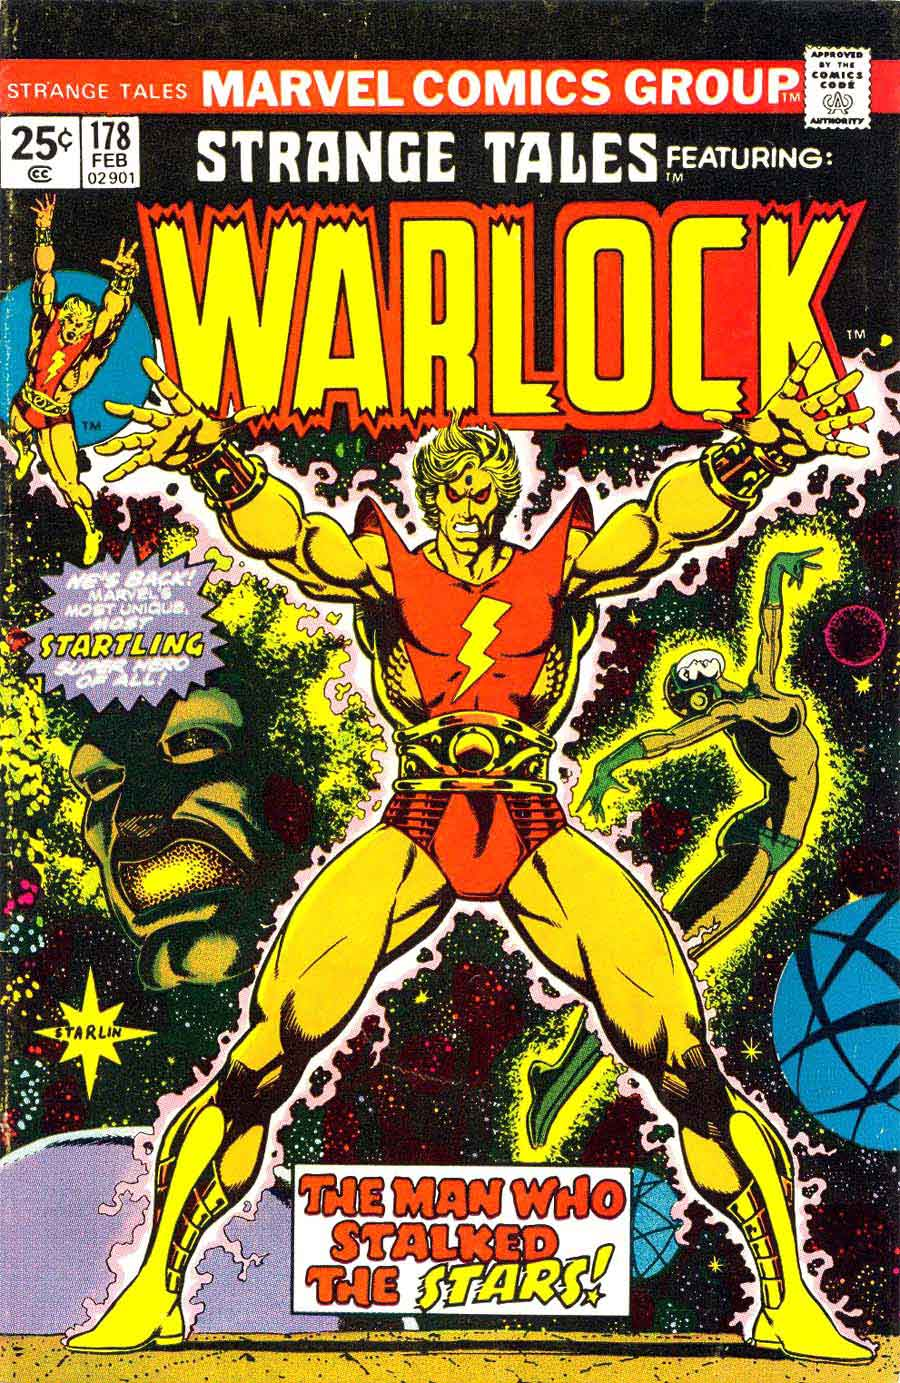 Strange Tales v1 #178 marvel warlock comic book cover art by Jim Starlin